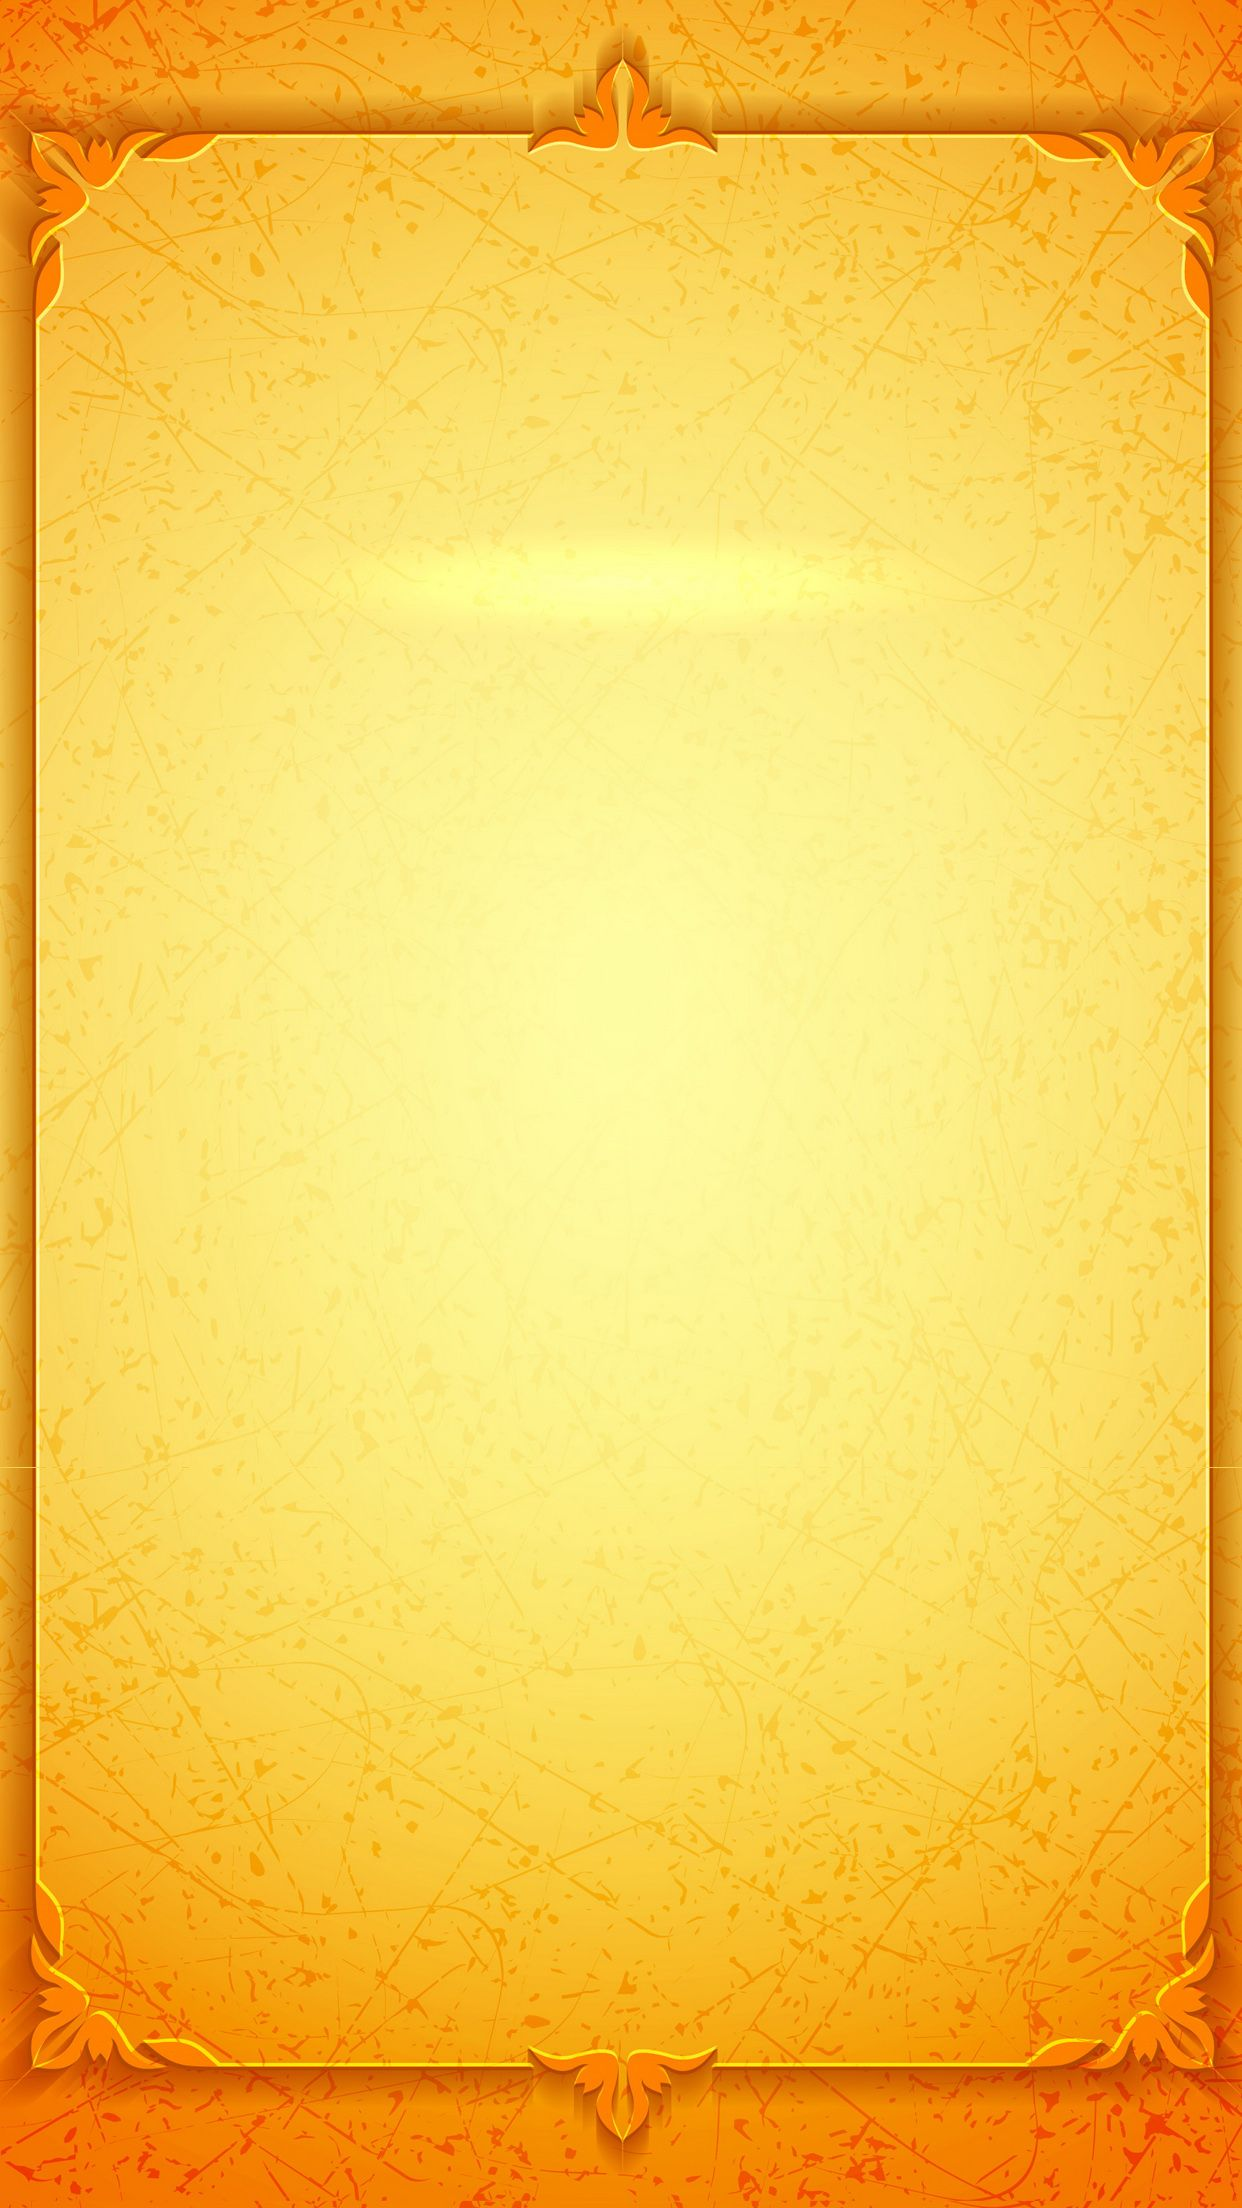 invitations h5 background gold